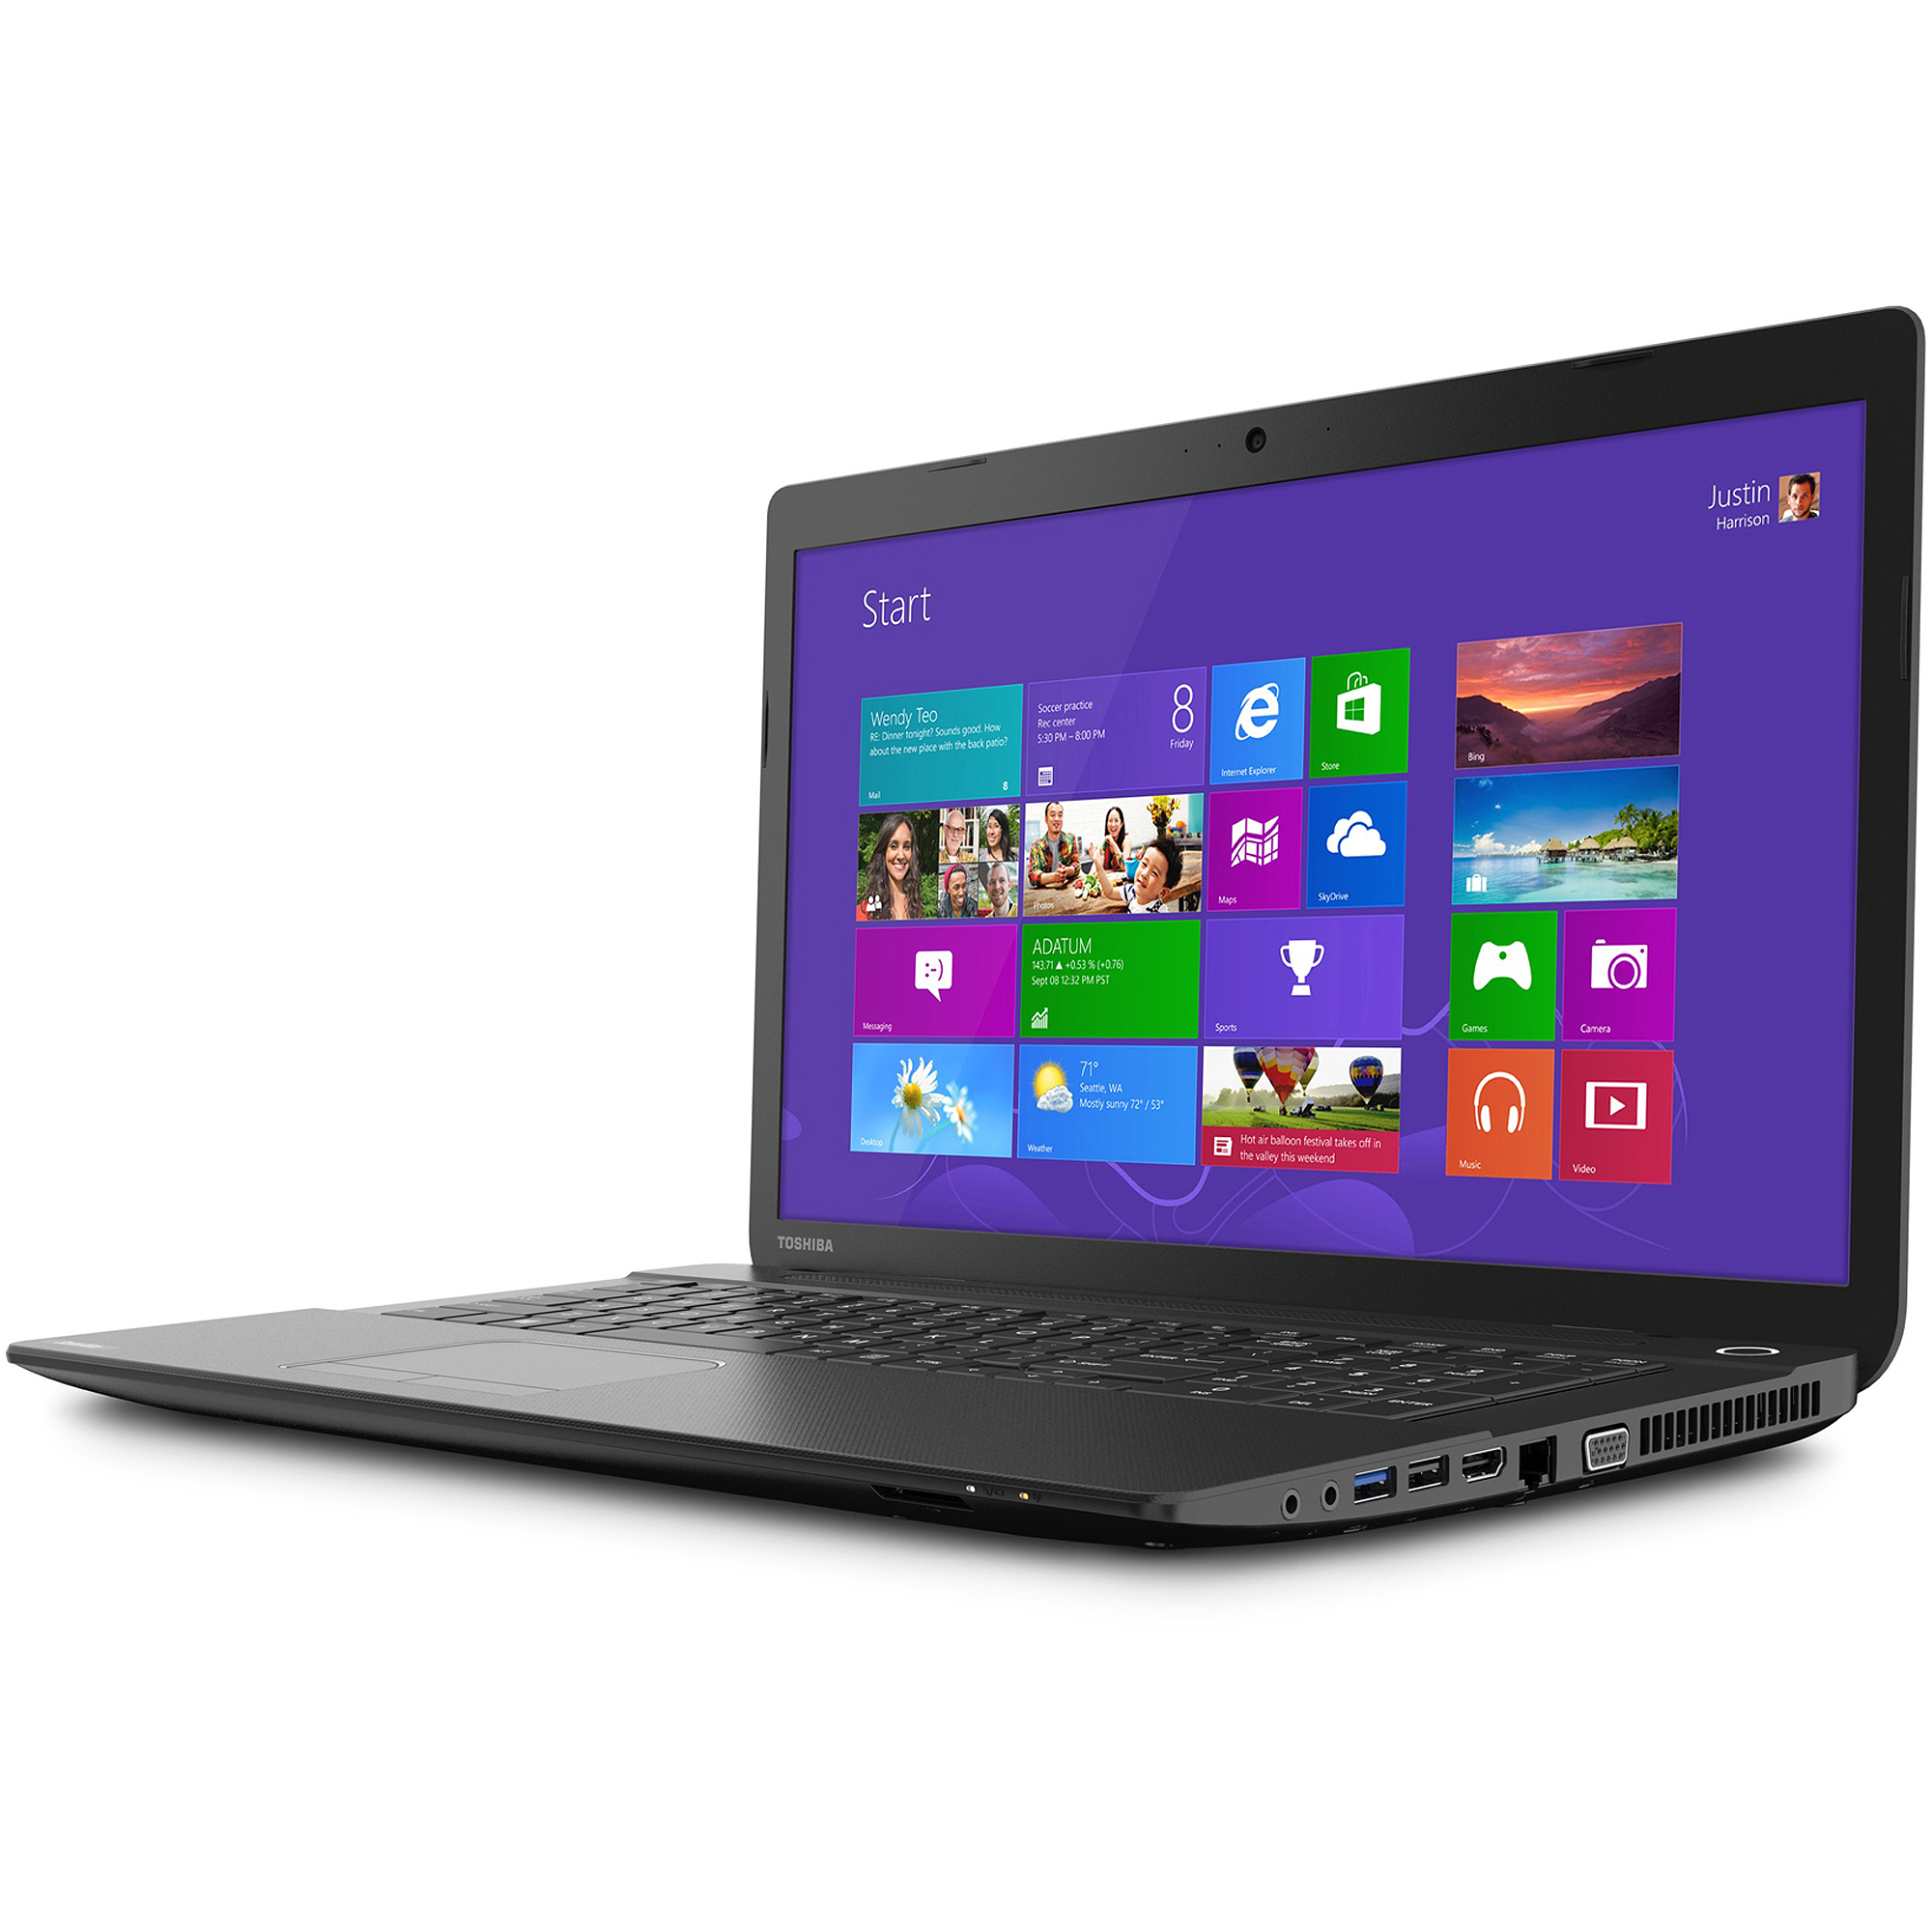 "Toshiba Jet Black 17.3"" Satellite C75D-B7230 Laptop PC with AMD Quad-Core A6-6310 Accelerated Processor, 6GB Memory, 750GB Hard Drive and Windows 8.1"